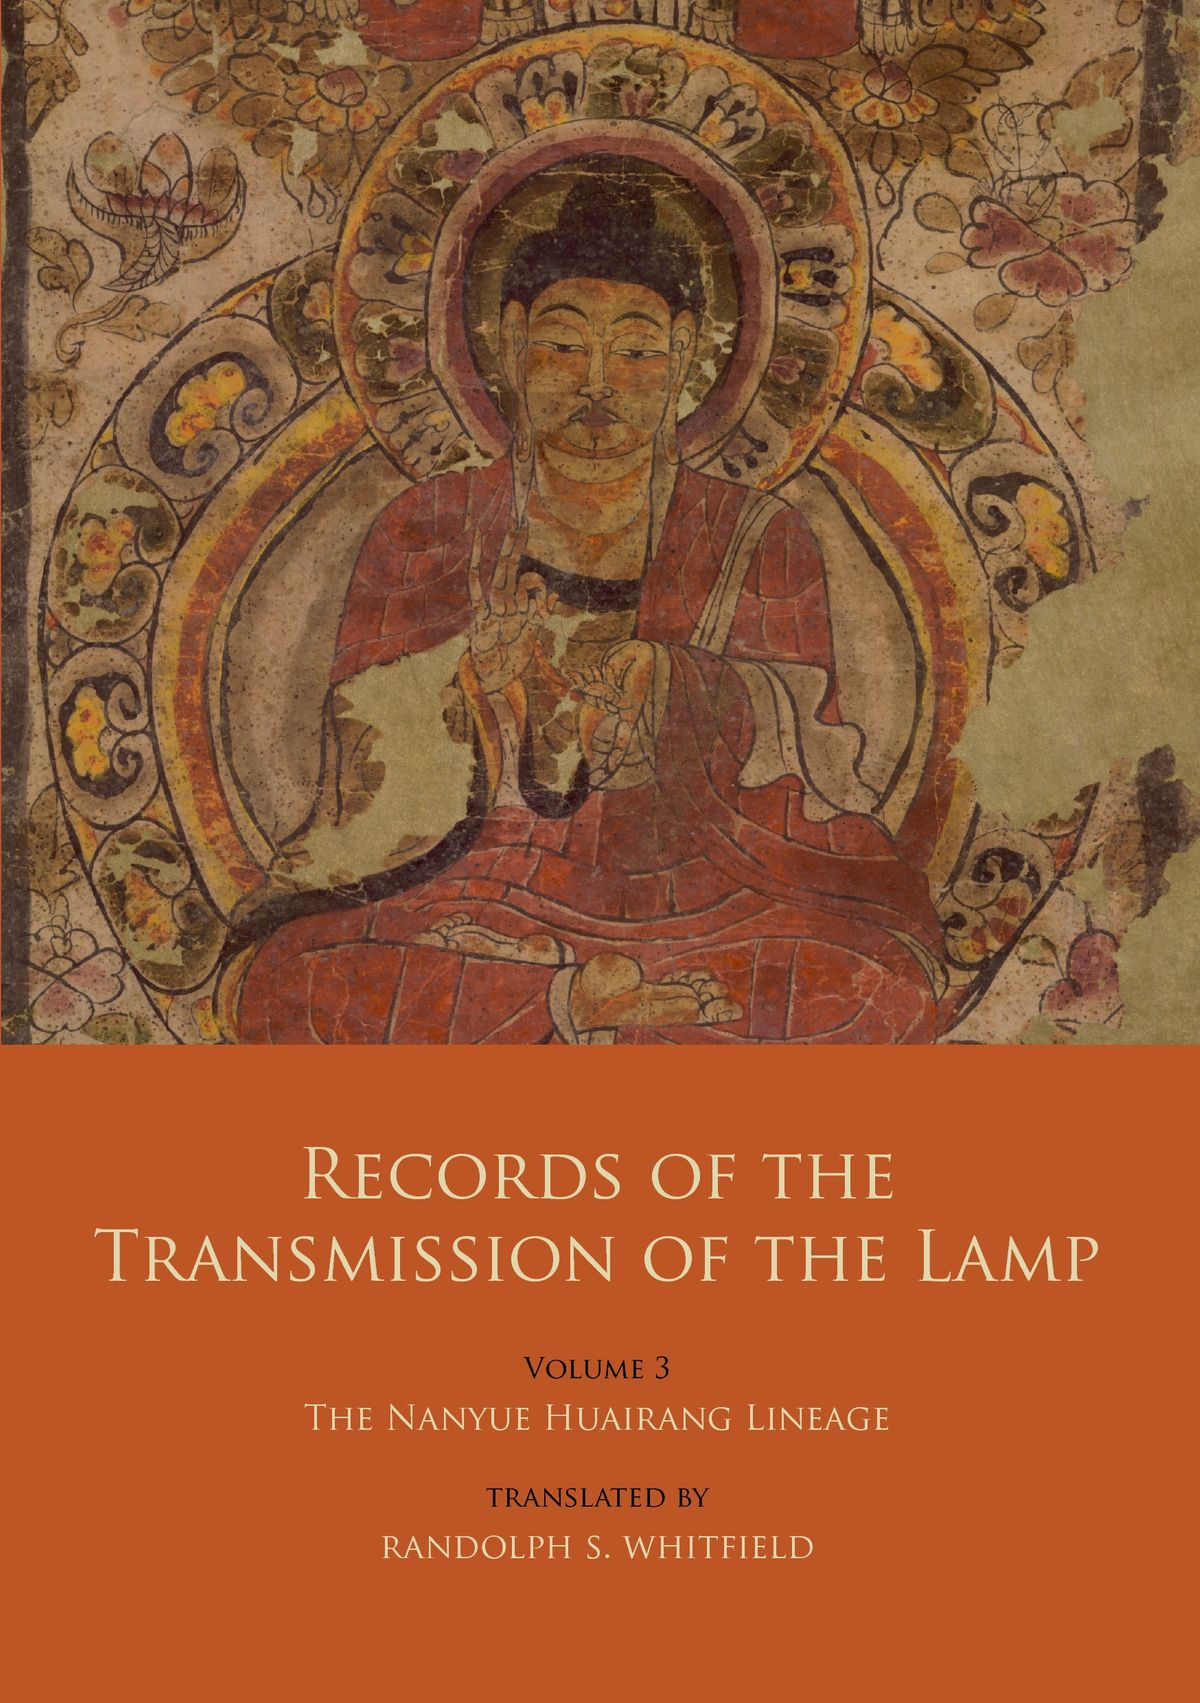 Transmission of the Lamp vol 3 cover art